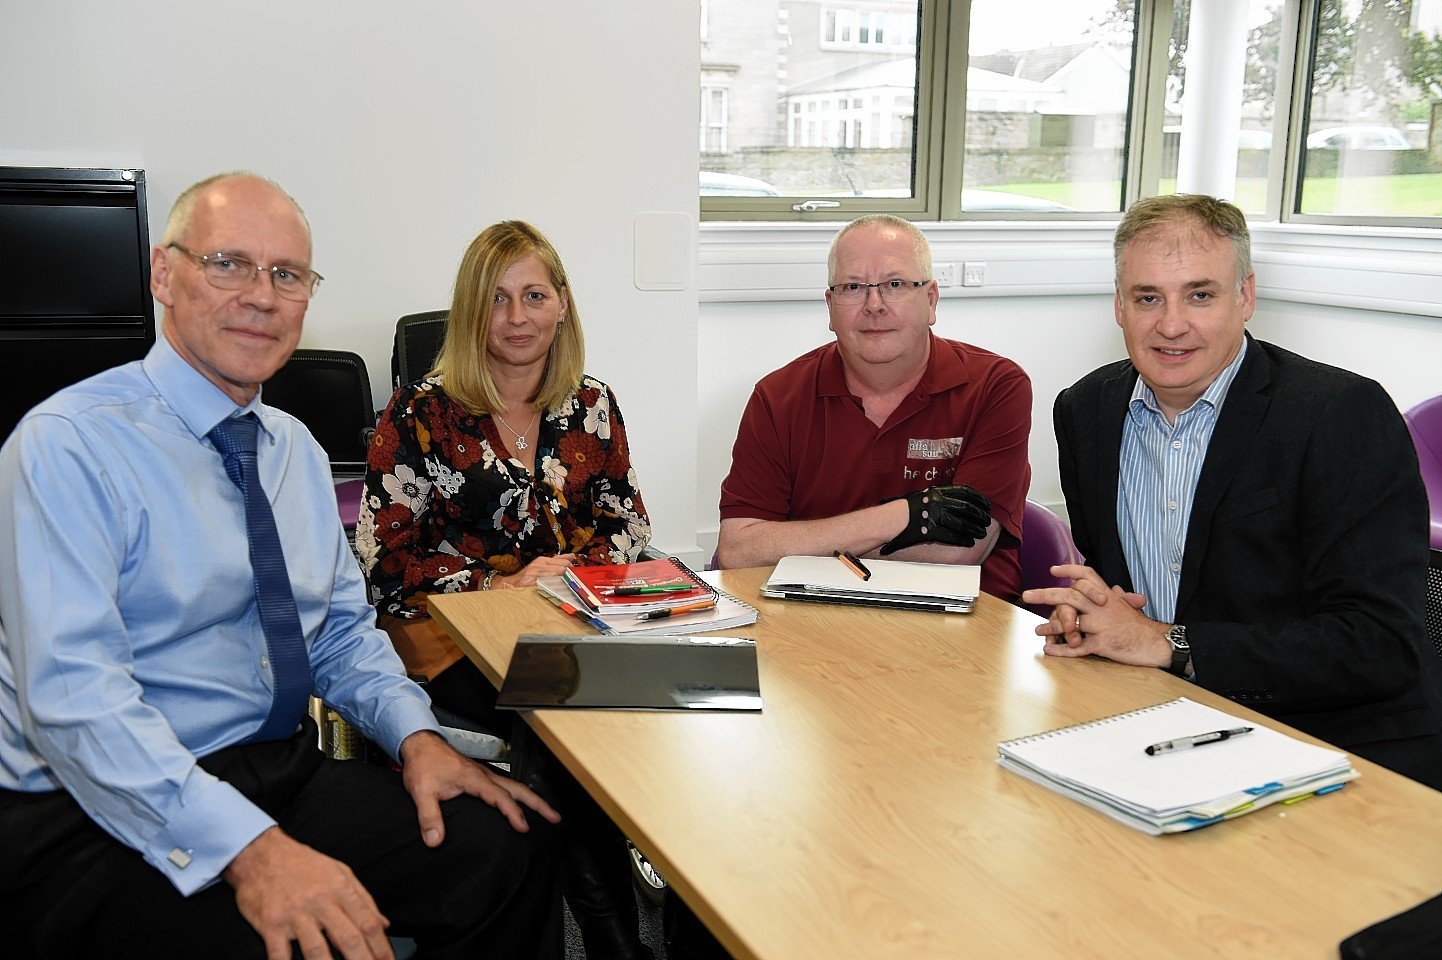 Professor Alastair Chambers, consultant in pain medicine NHS Grampian, Jeni Jeynes, Chris Bridgeford, members of 'Affasair', and MSP Richard Lochhead, who held a meeting in the Alexander Graham Bell building at Moray College to discuss the reinstatement of a pain clinic in Elgin. Picture by Gordon Lennox